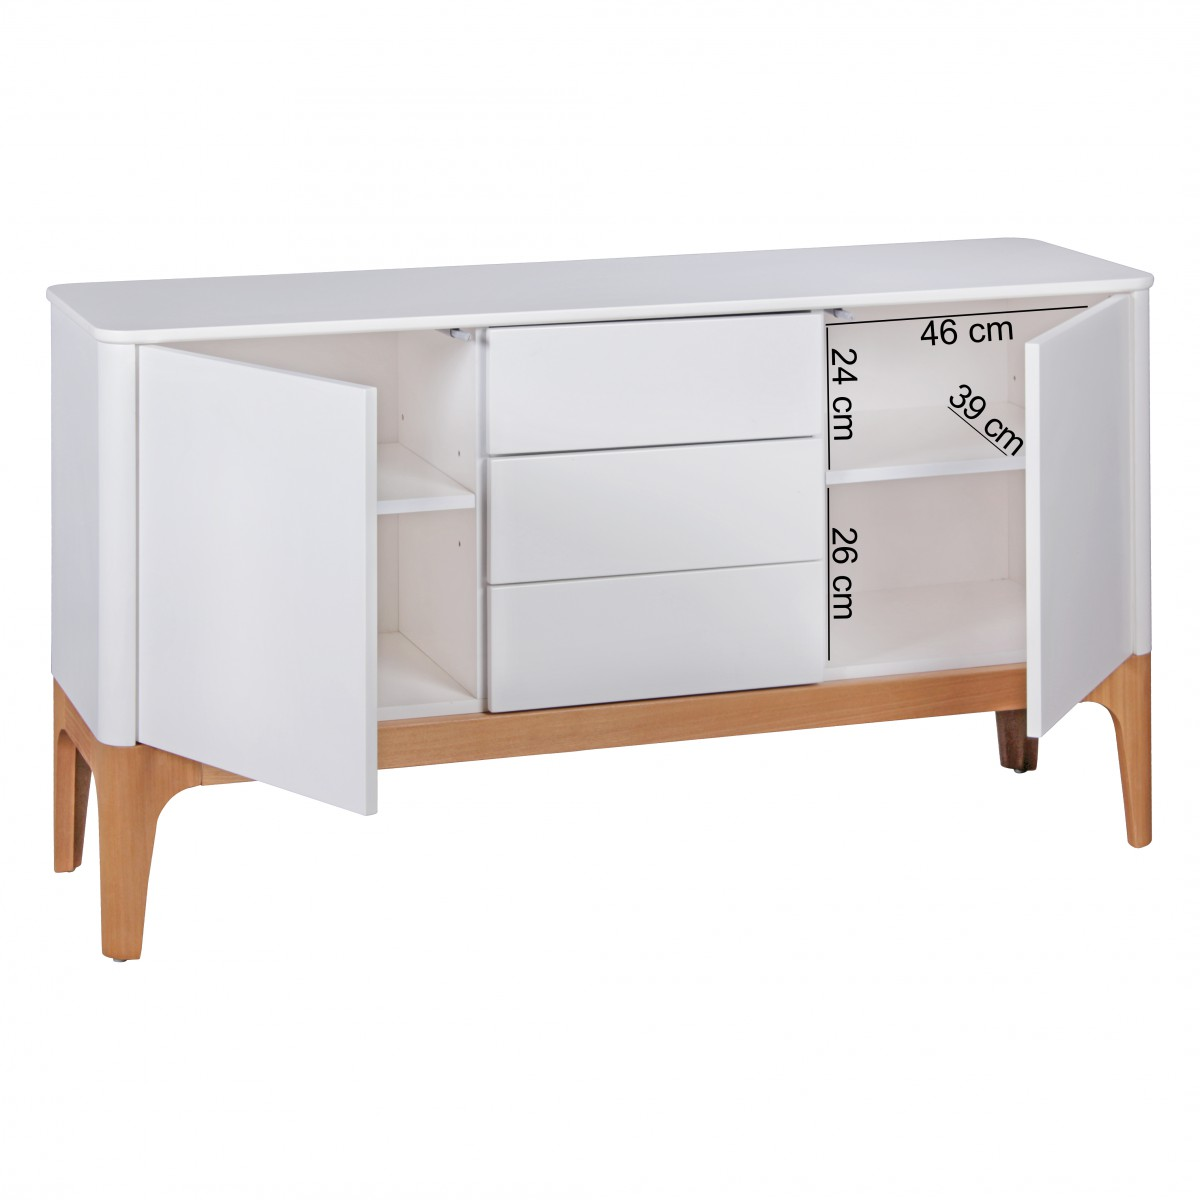 finebuy kommode wei esche mdf retro sideboard 150 cm mit. Black Bedroom Furniture Sets. Home Design Ideas